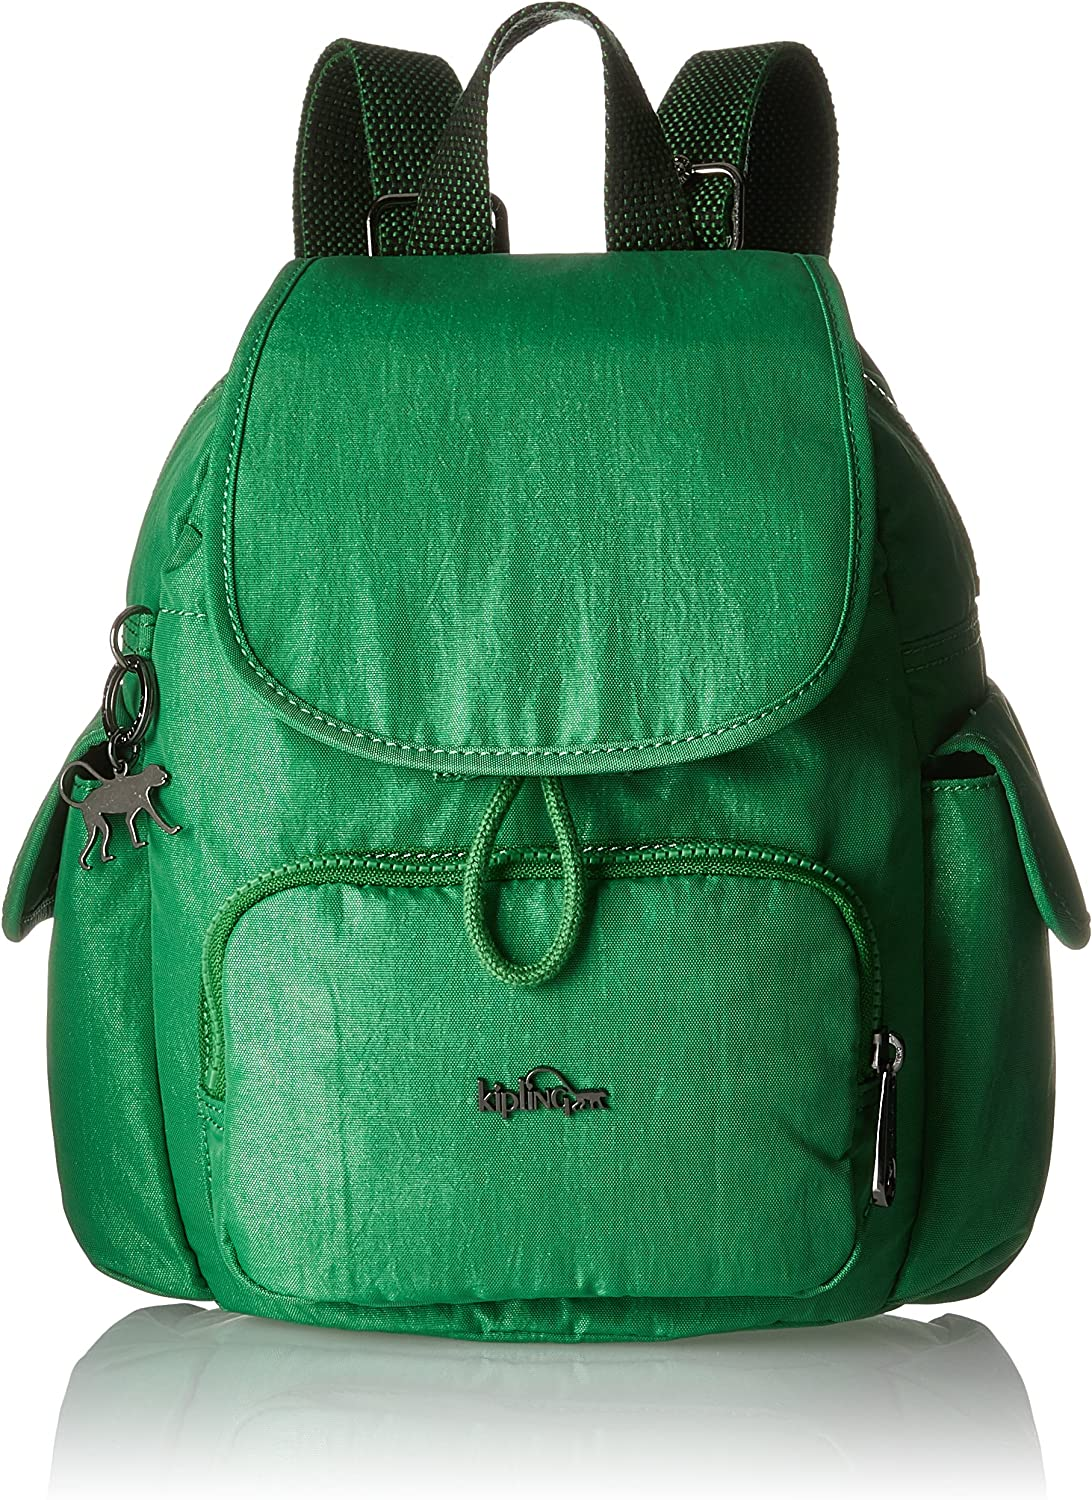 Kipling City Pack S Mini Backpack Wild Greeny